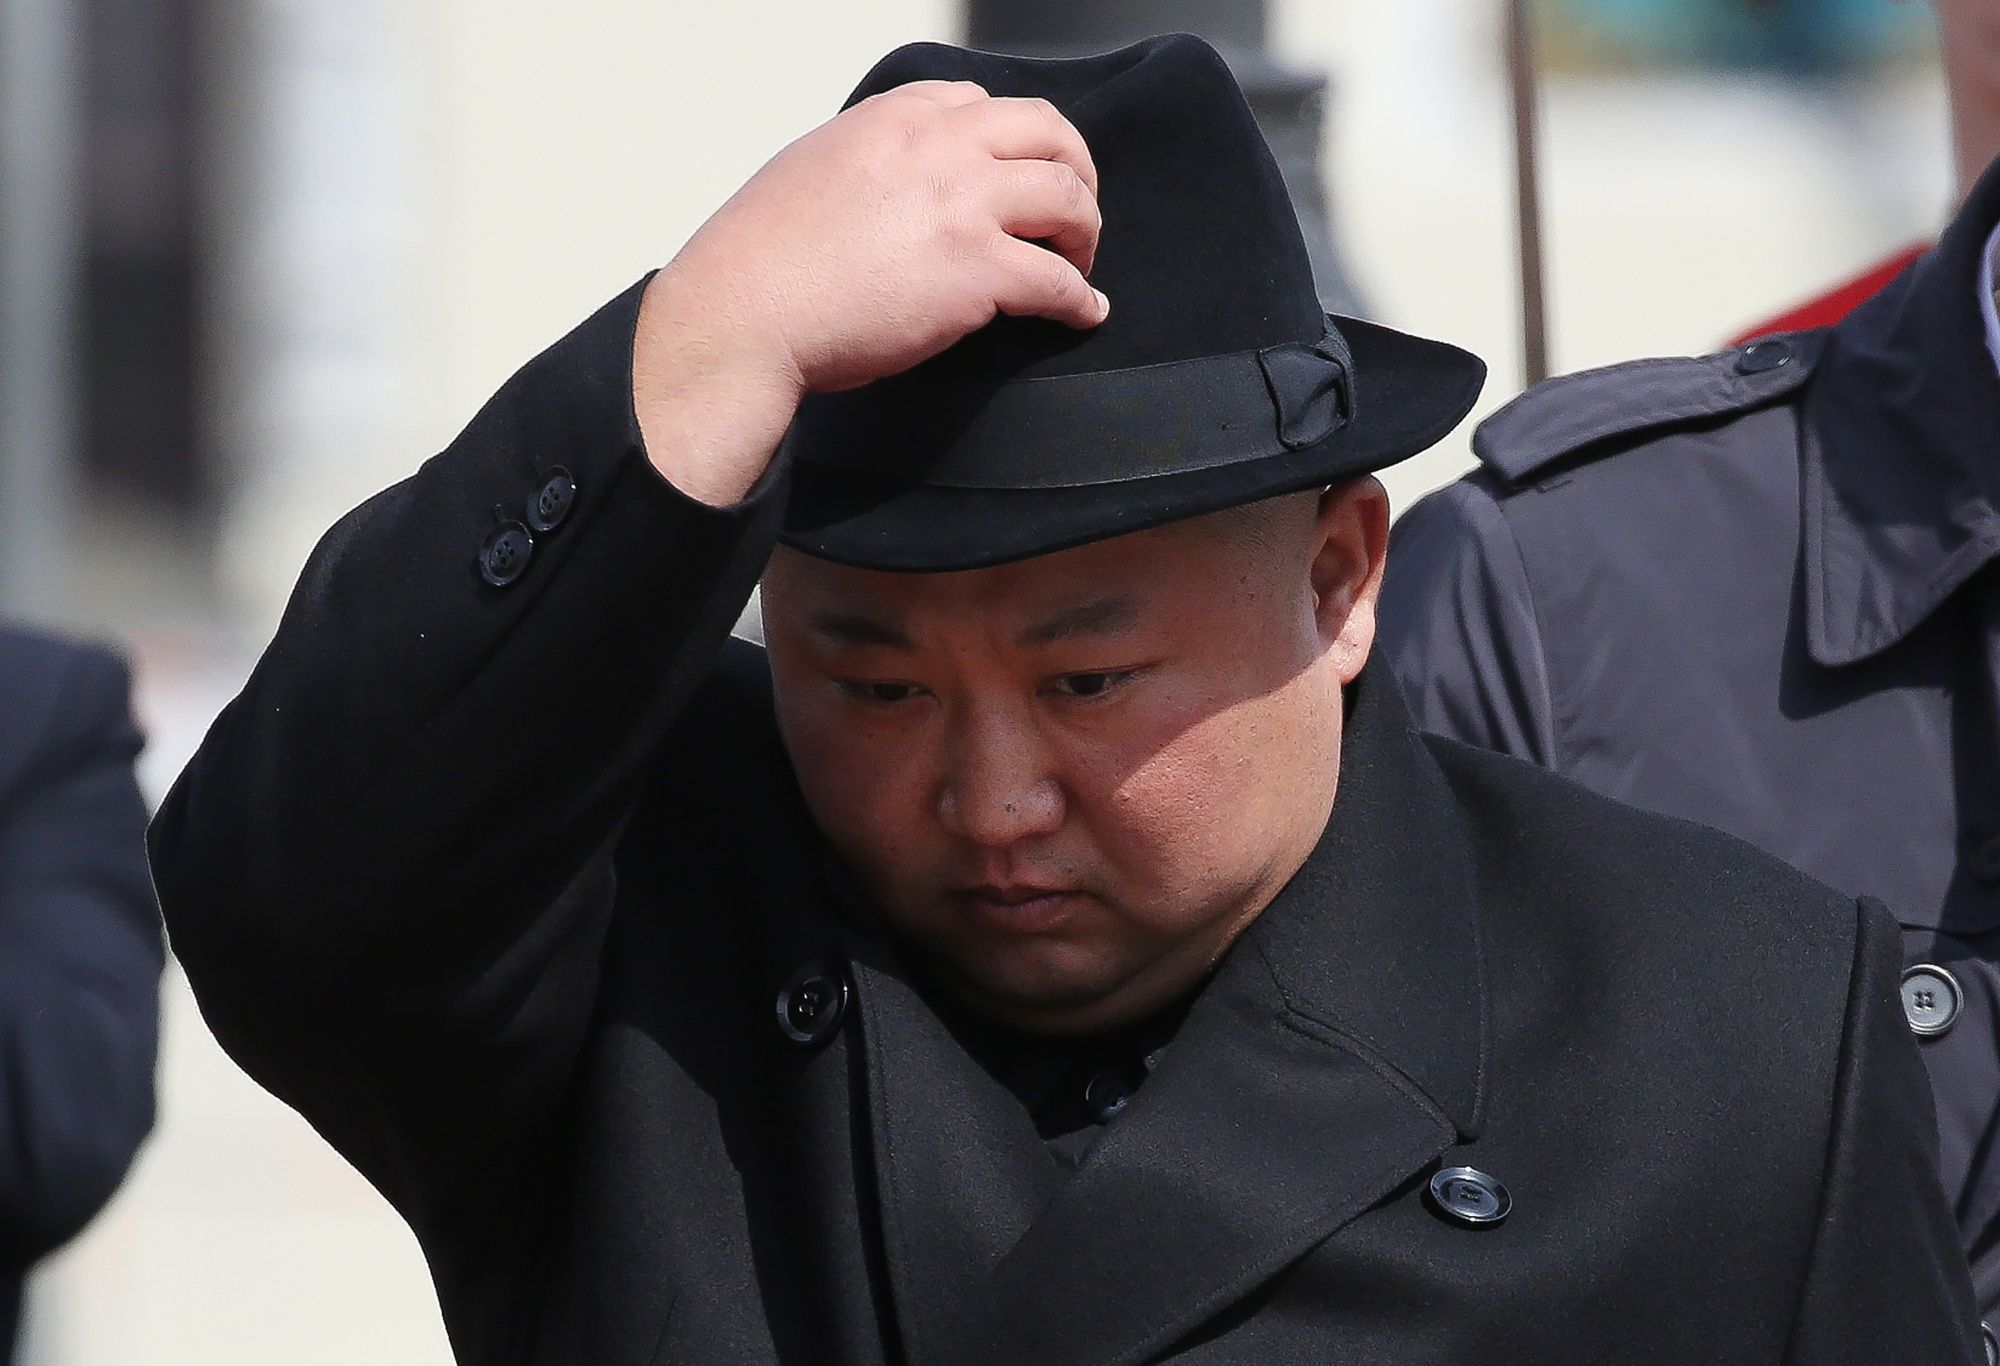 Kim Jong Un Was in Critical Condition After Surgery, U.S. Official Says